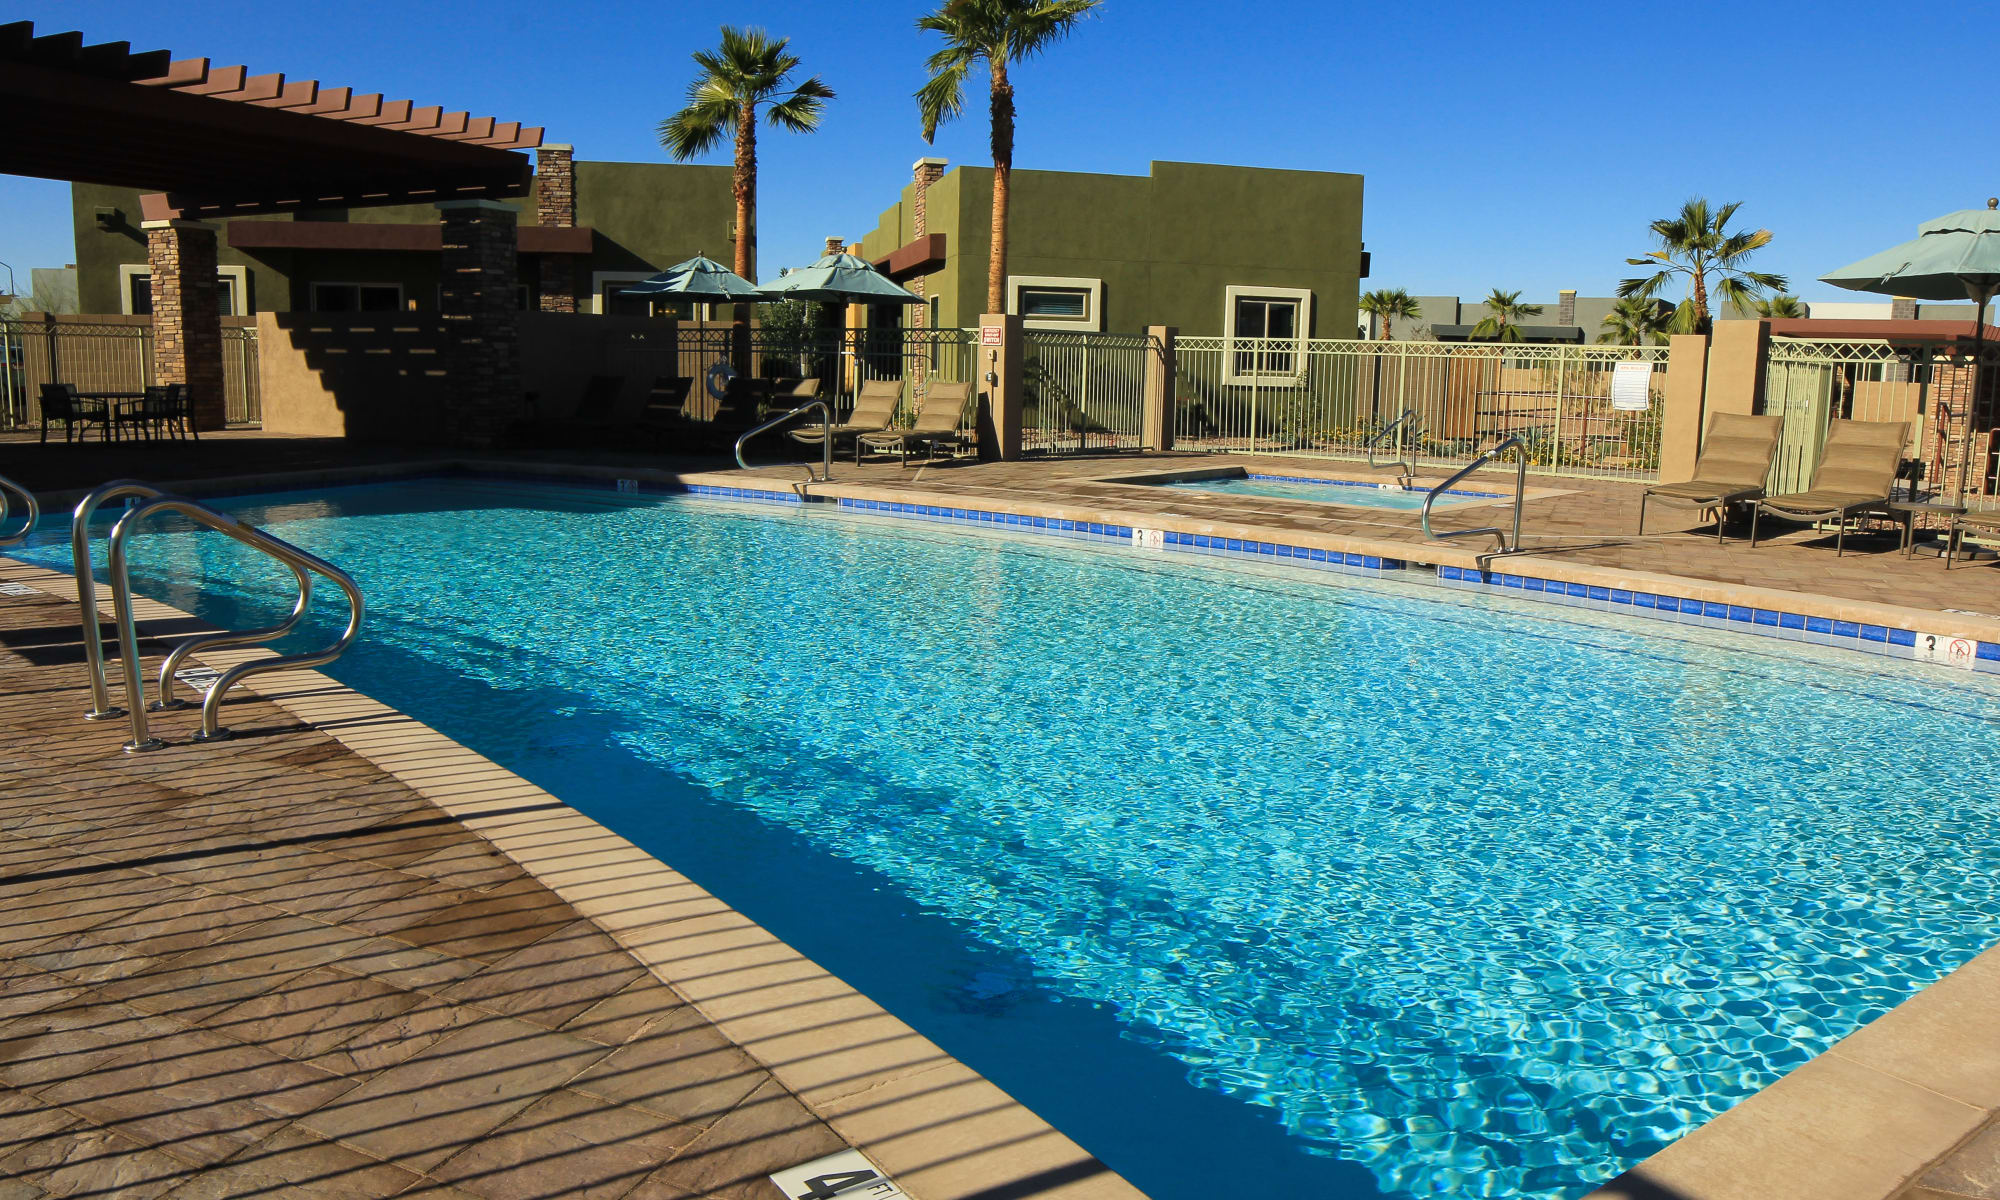 Apartments at Arizona in Gilbert, Arizona